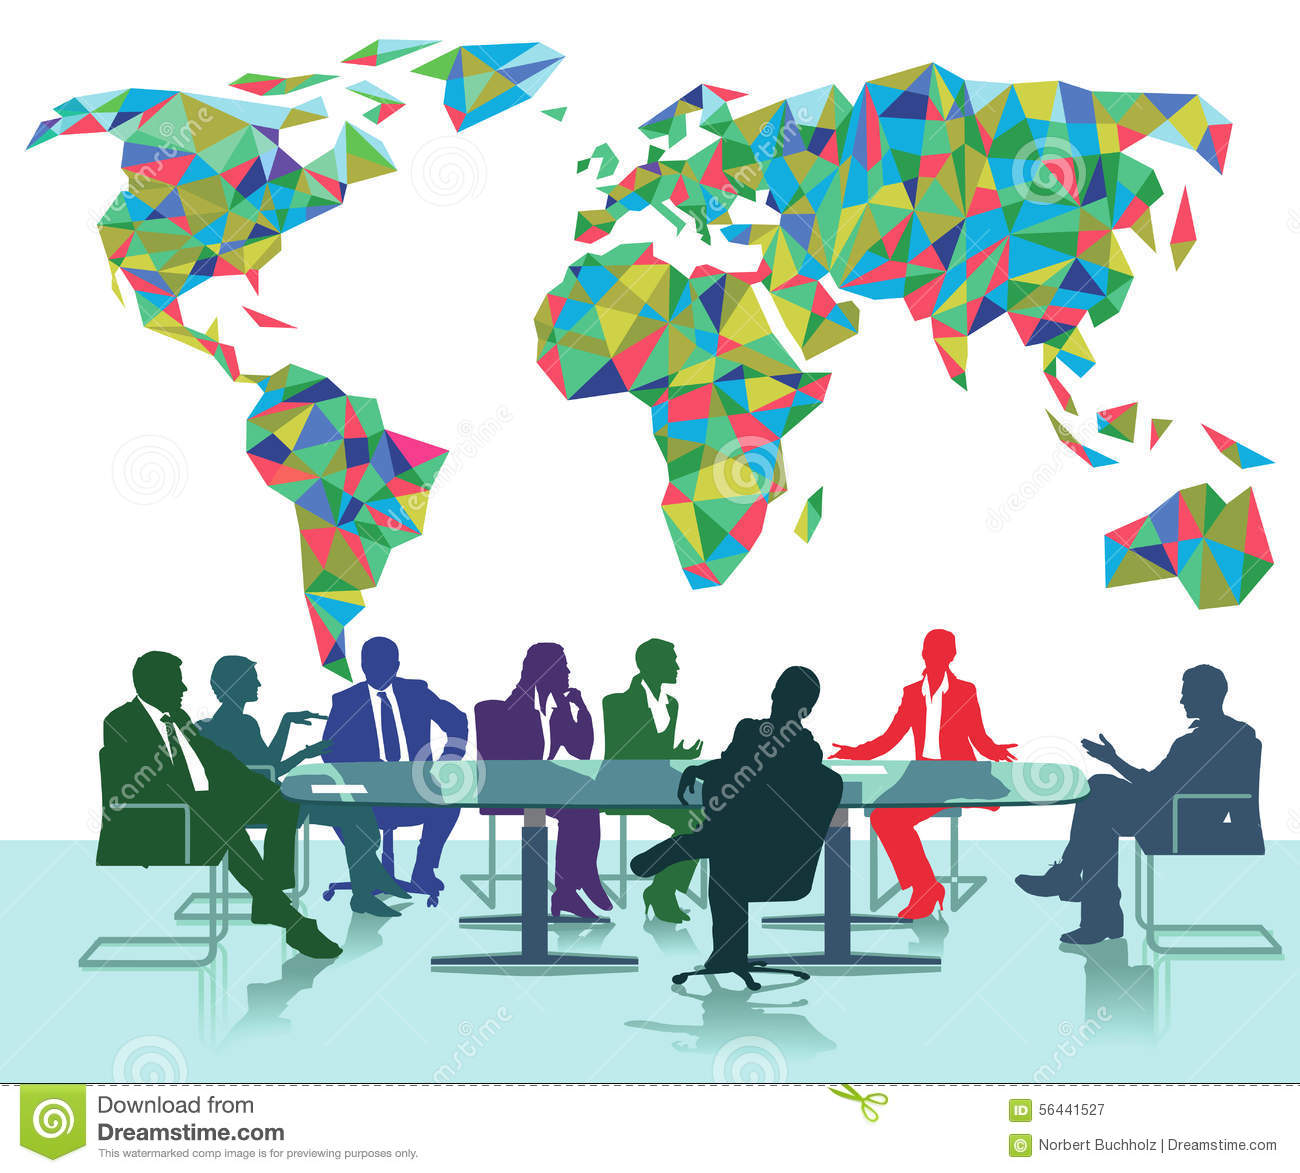 meeting professionals internationals We also invite international educators and interested professionals from  for inquiries regarding meeting or  mid-missouri advisors to internationals .